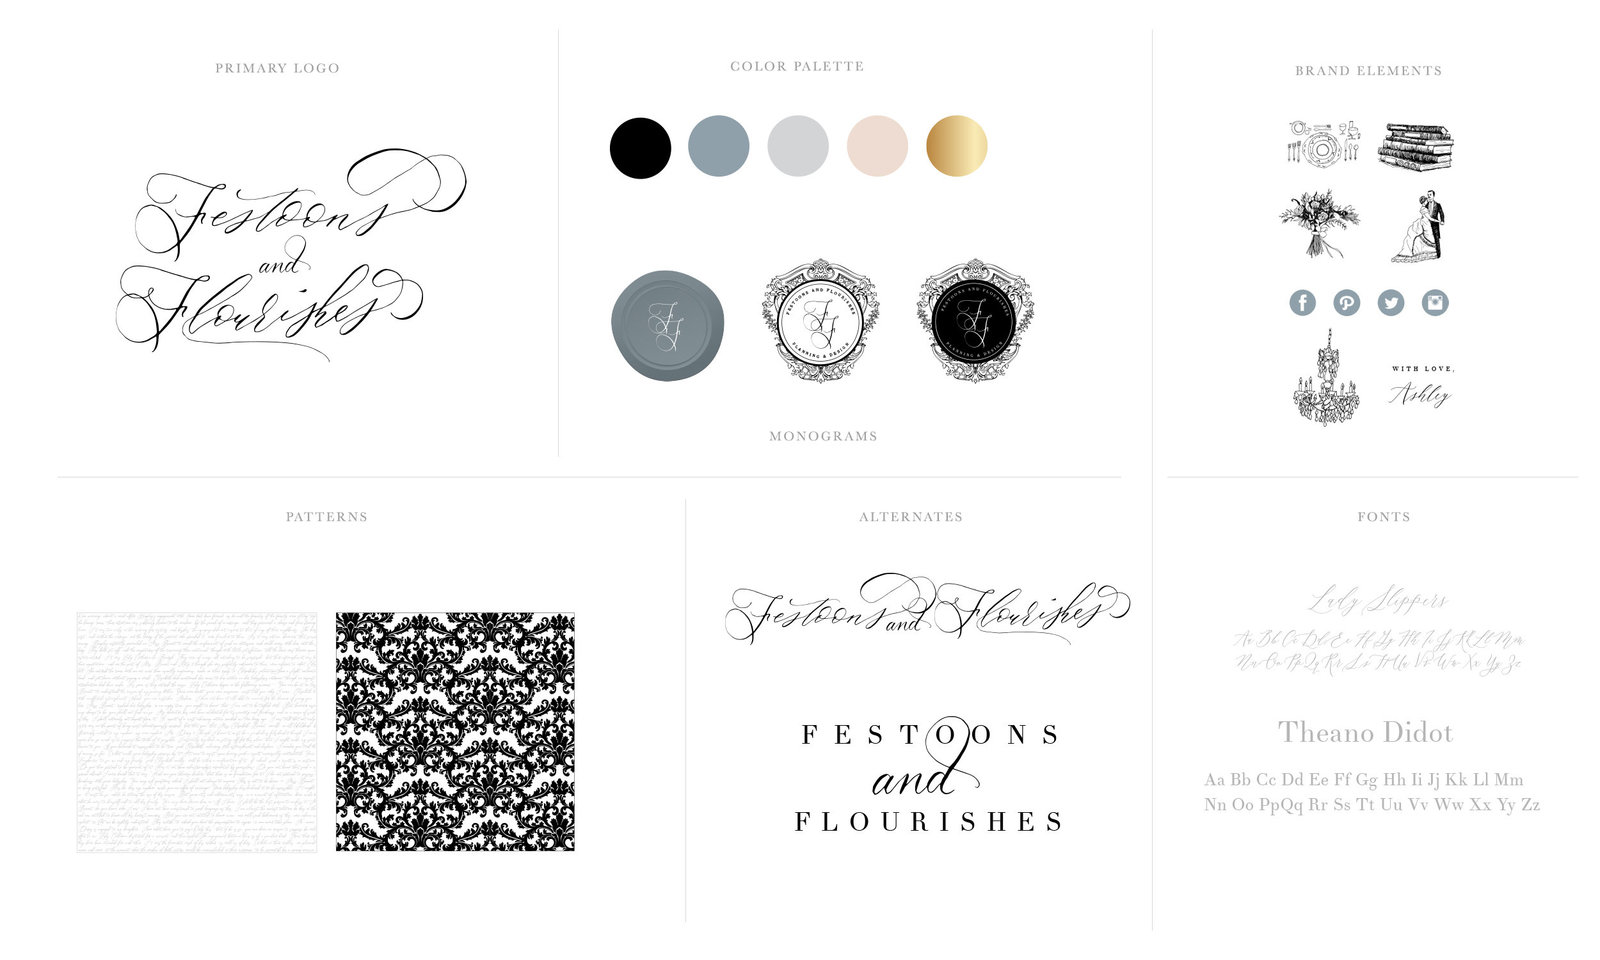 brand-board-wedding-planner-branding-for-wedding-businesses-festoons